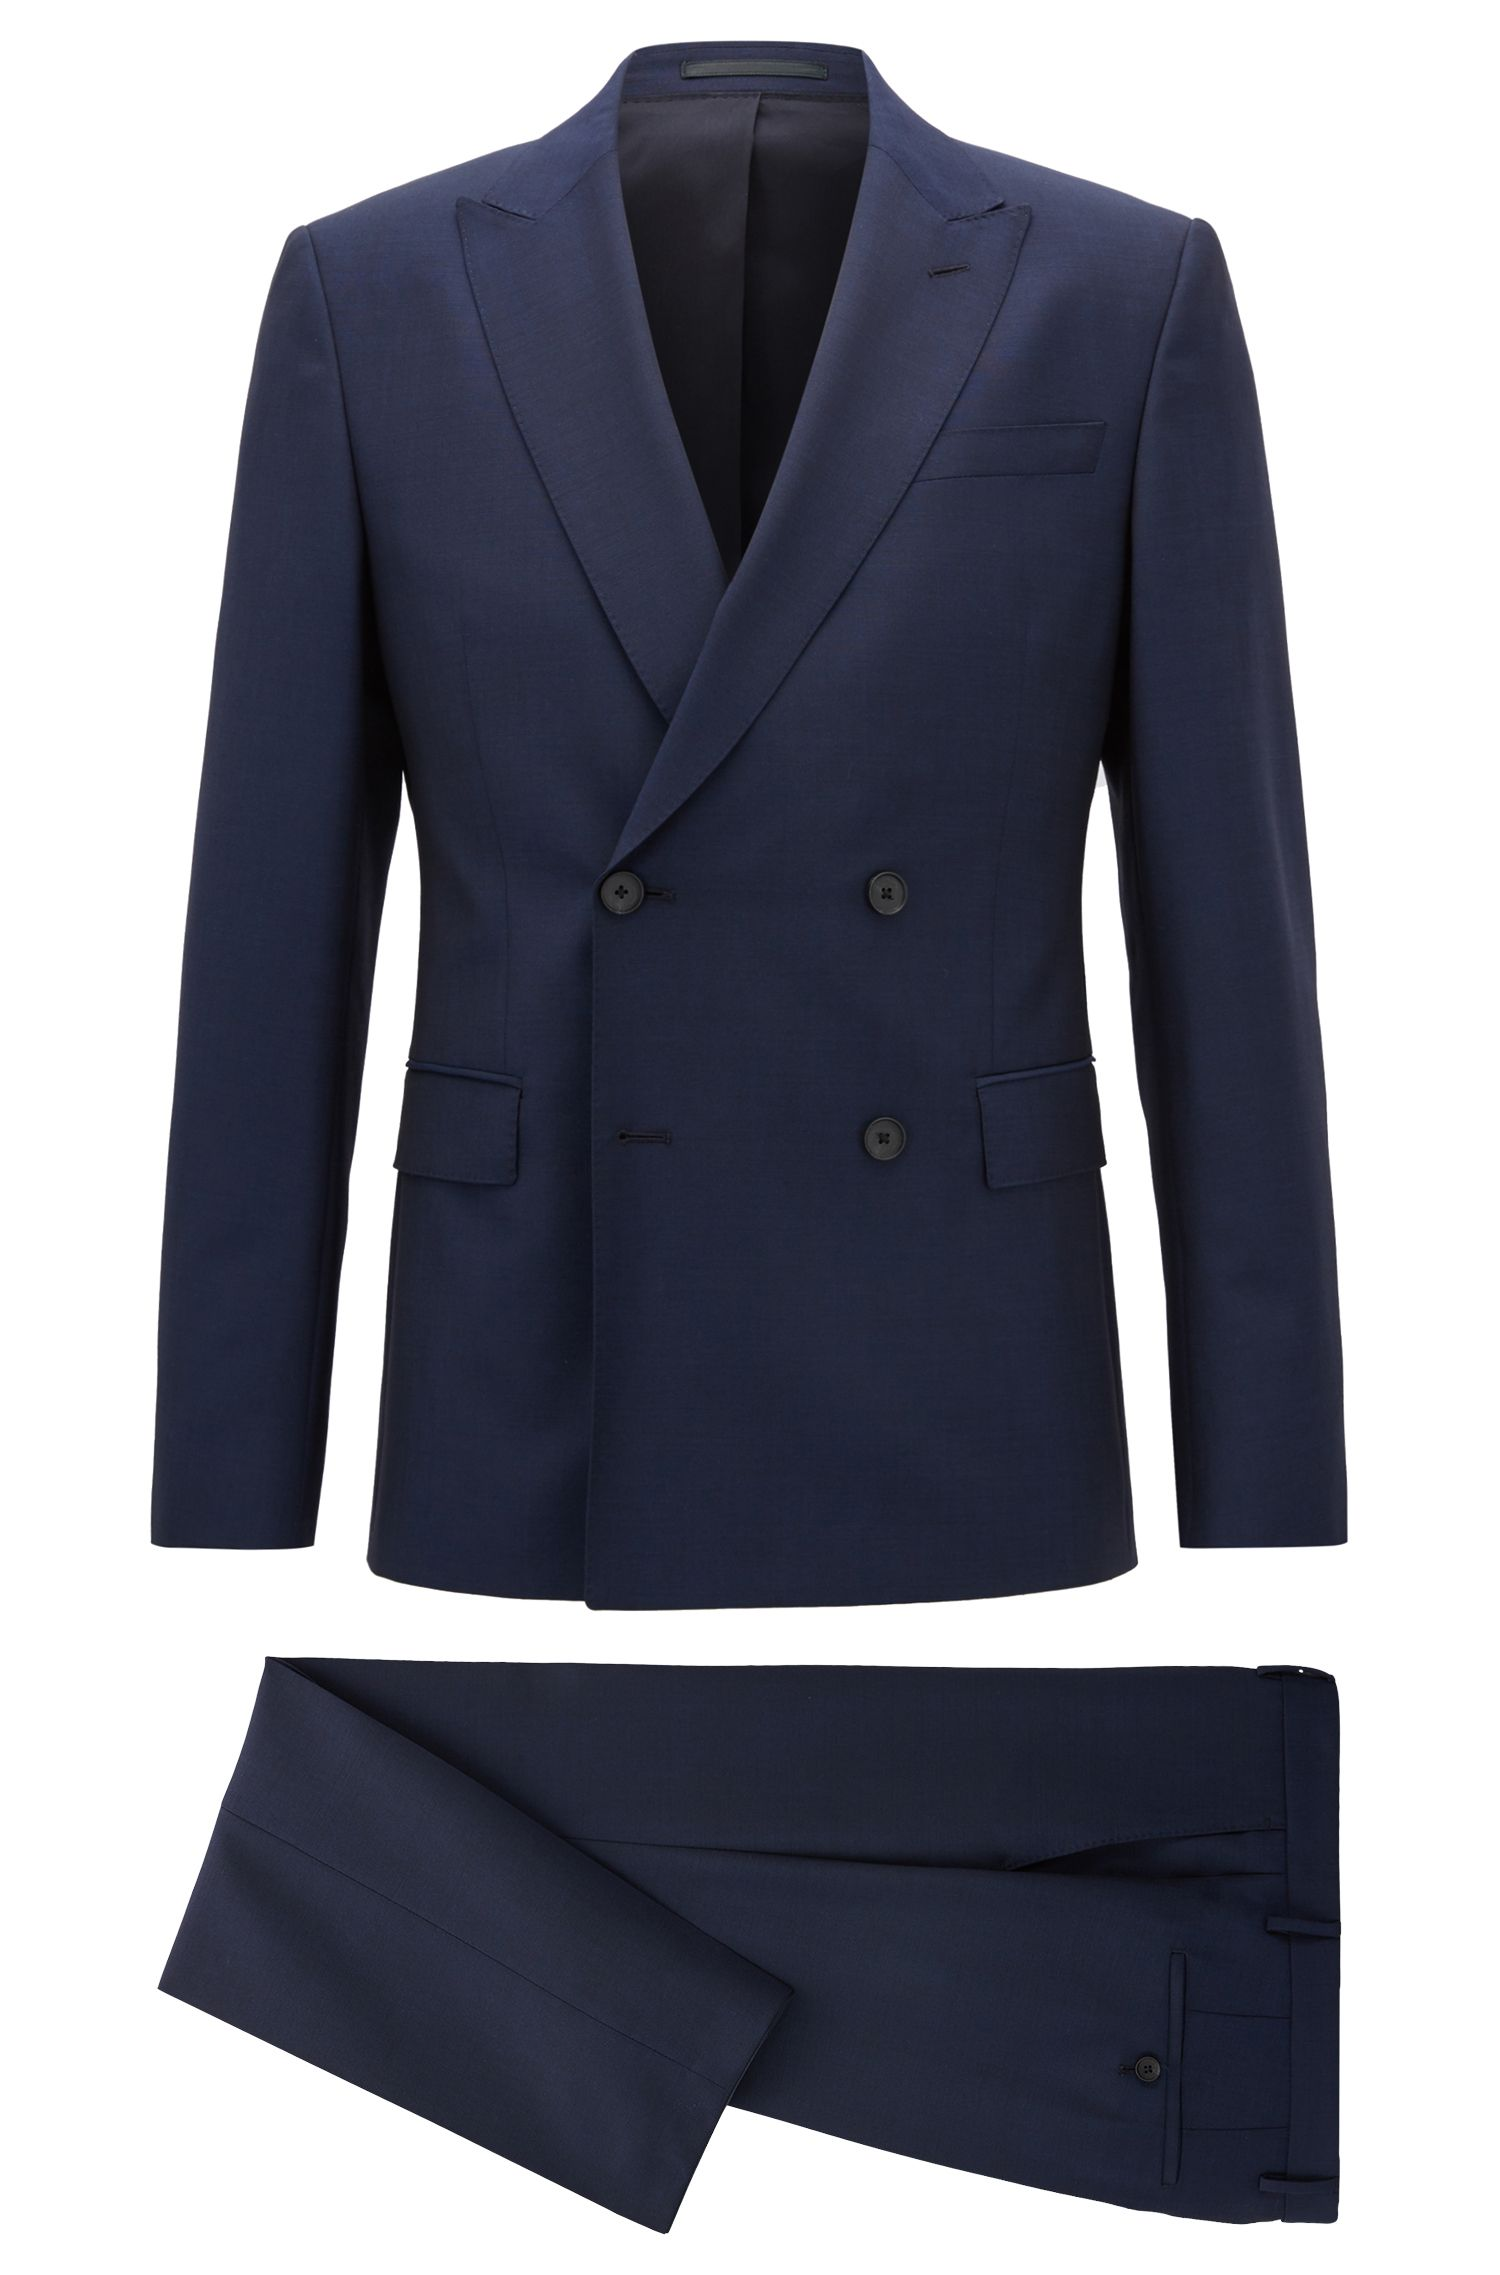 Virgin Wool/Mohair Suit, Slim Fit  | Namil/Ben